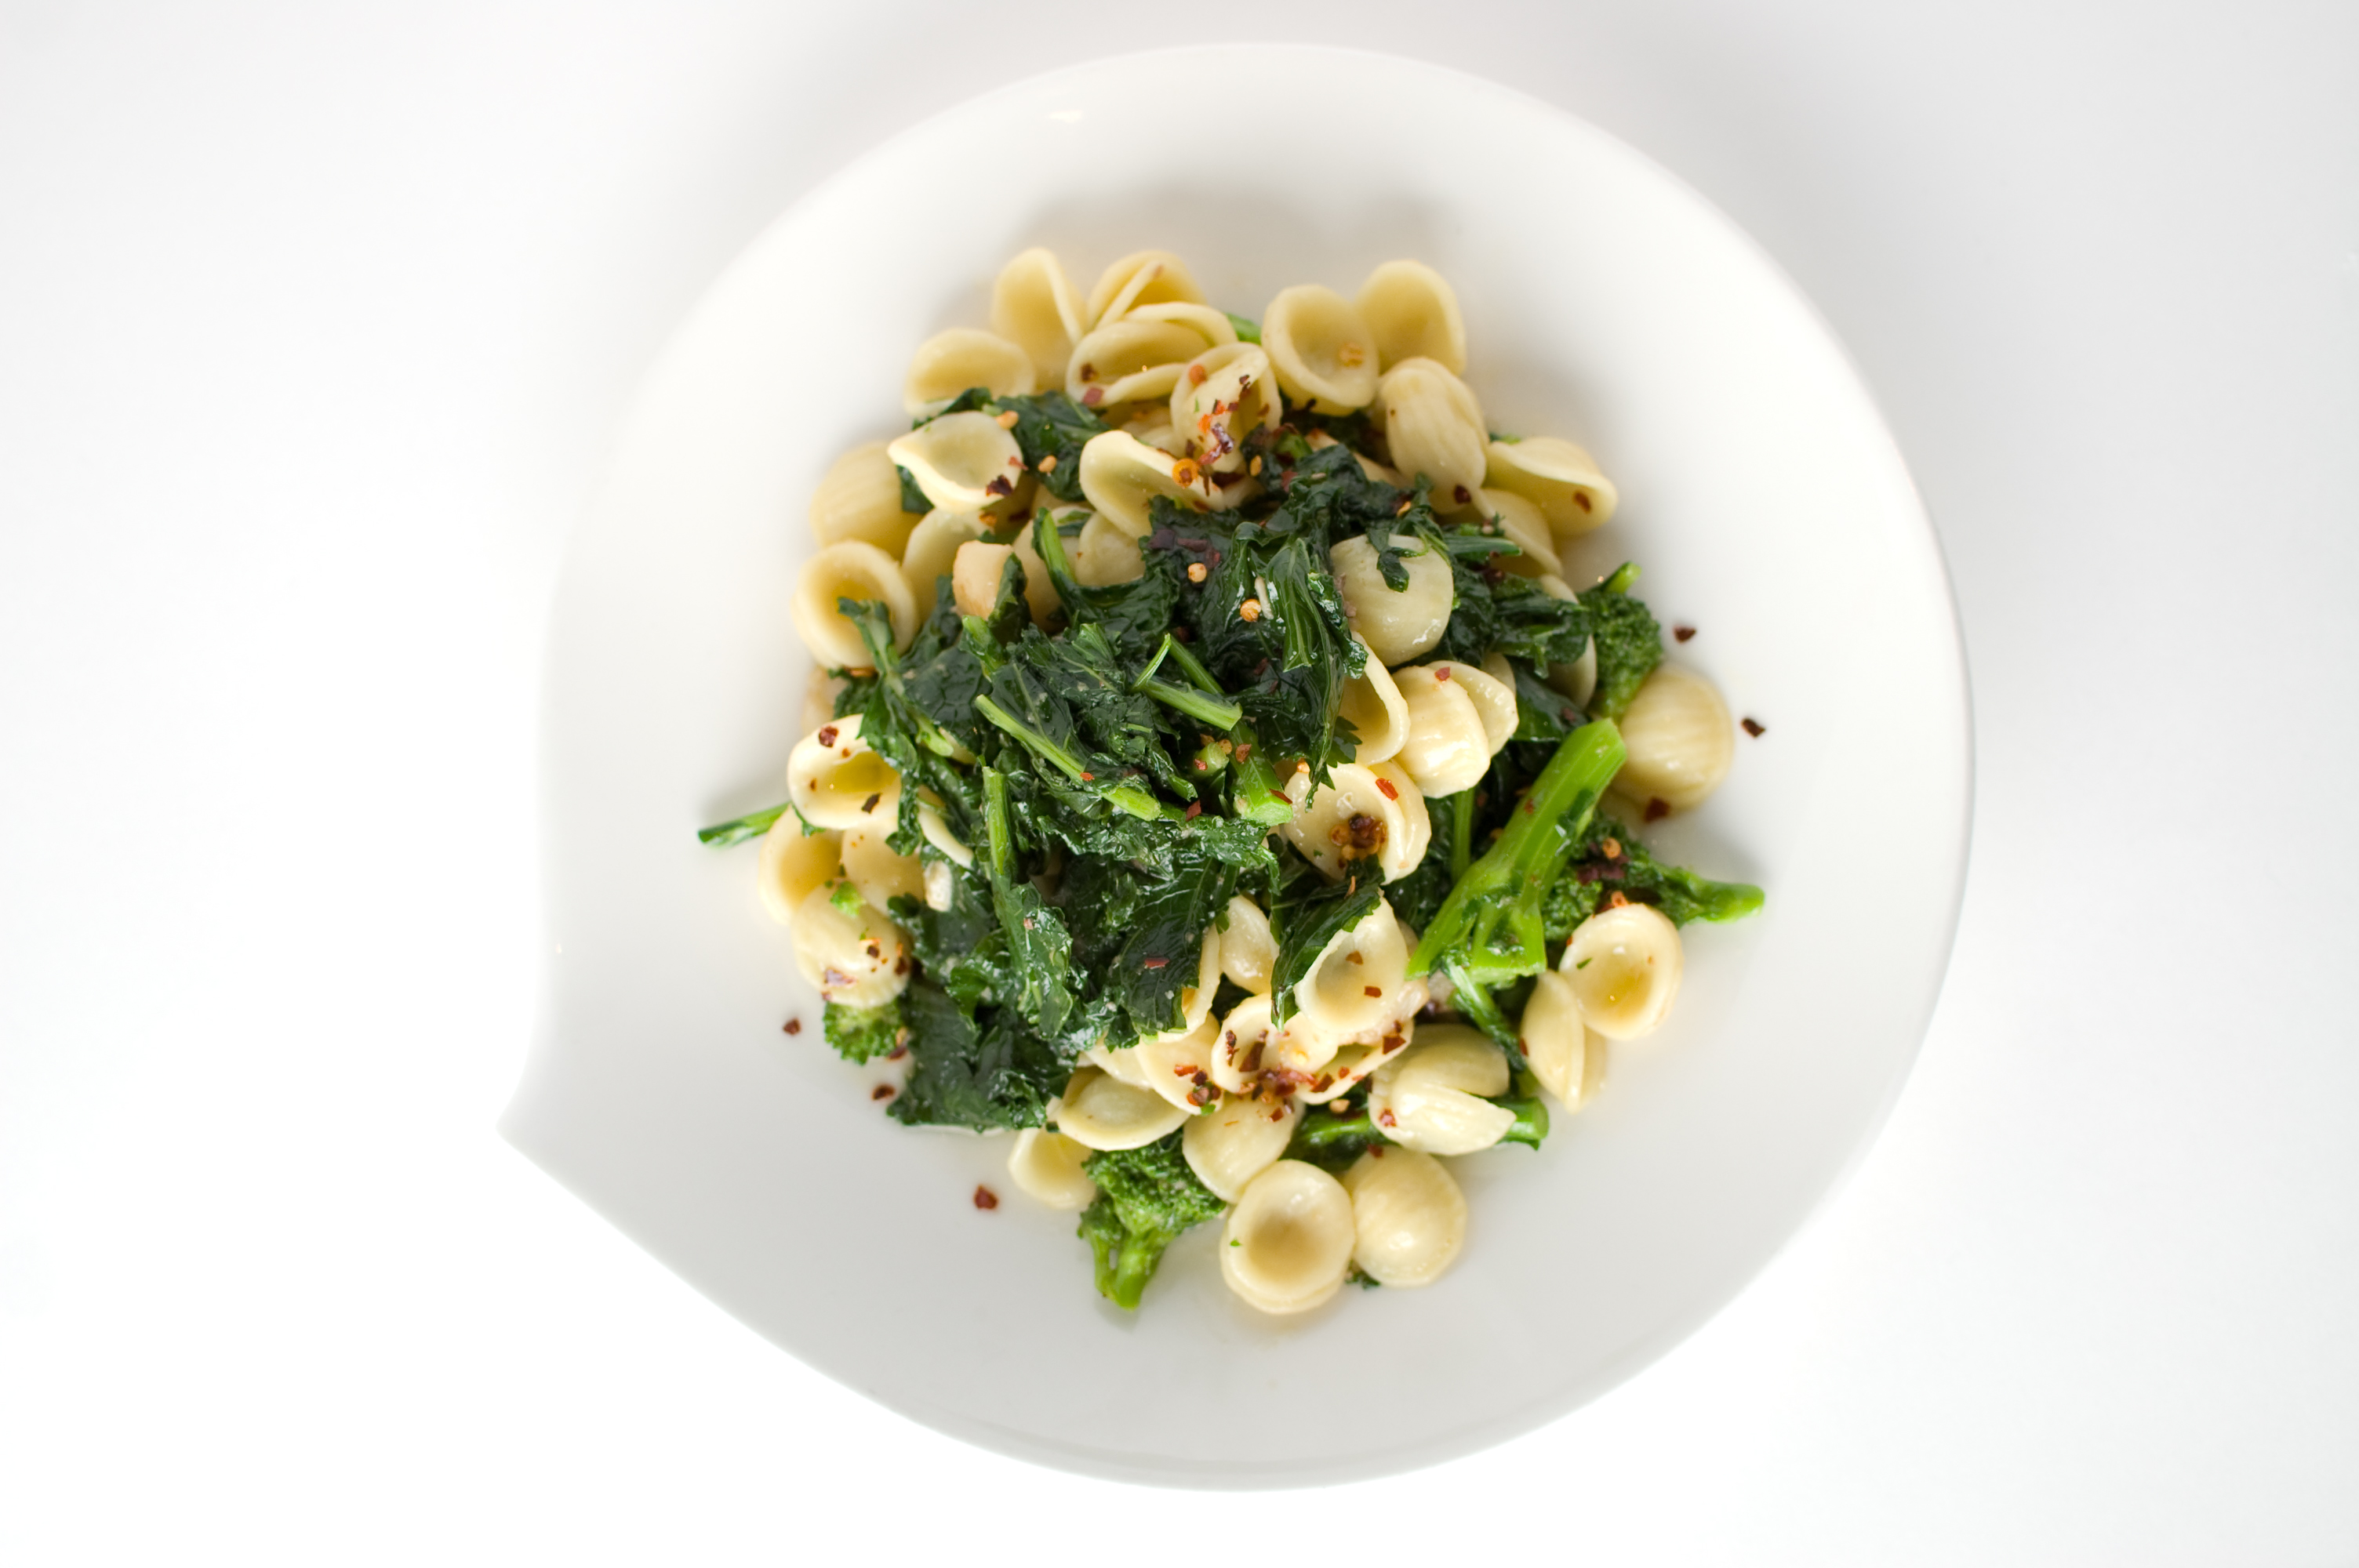 Macaroni with Broccoli Rabe